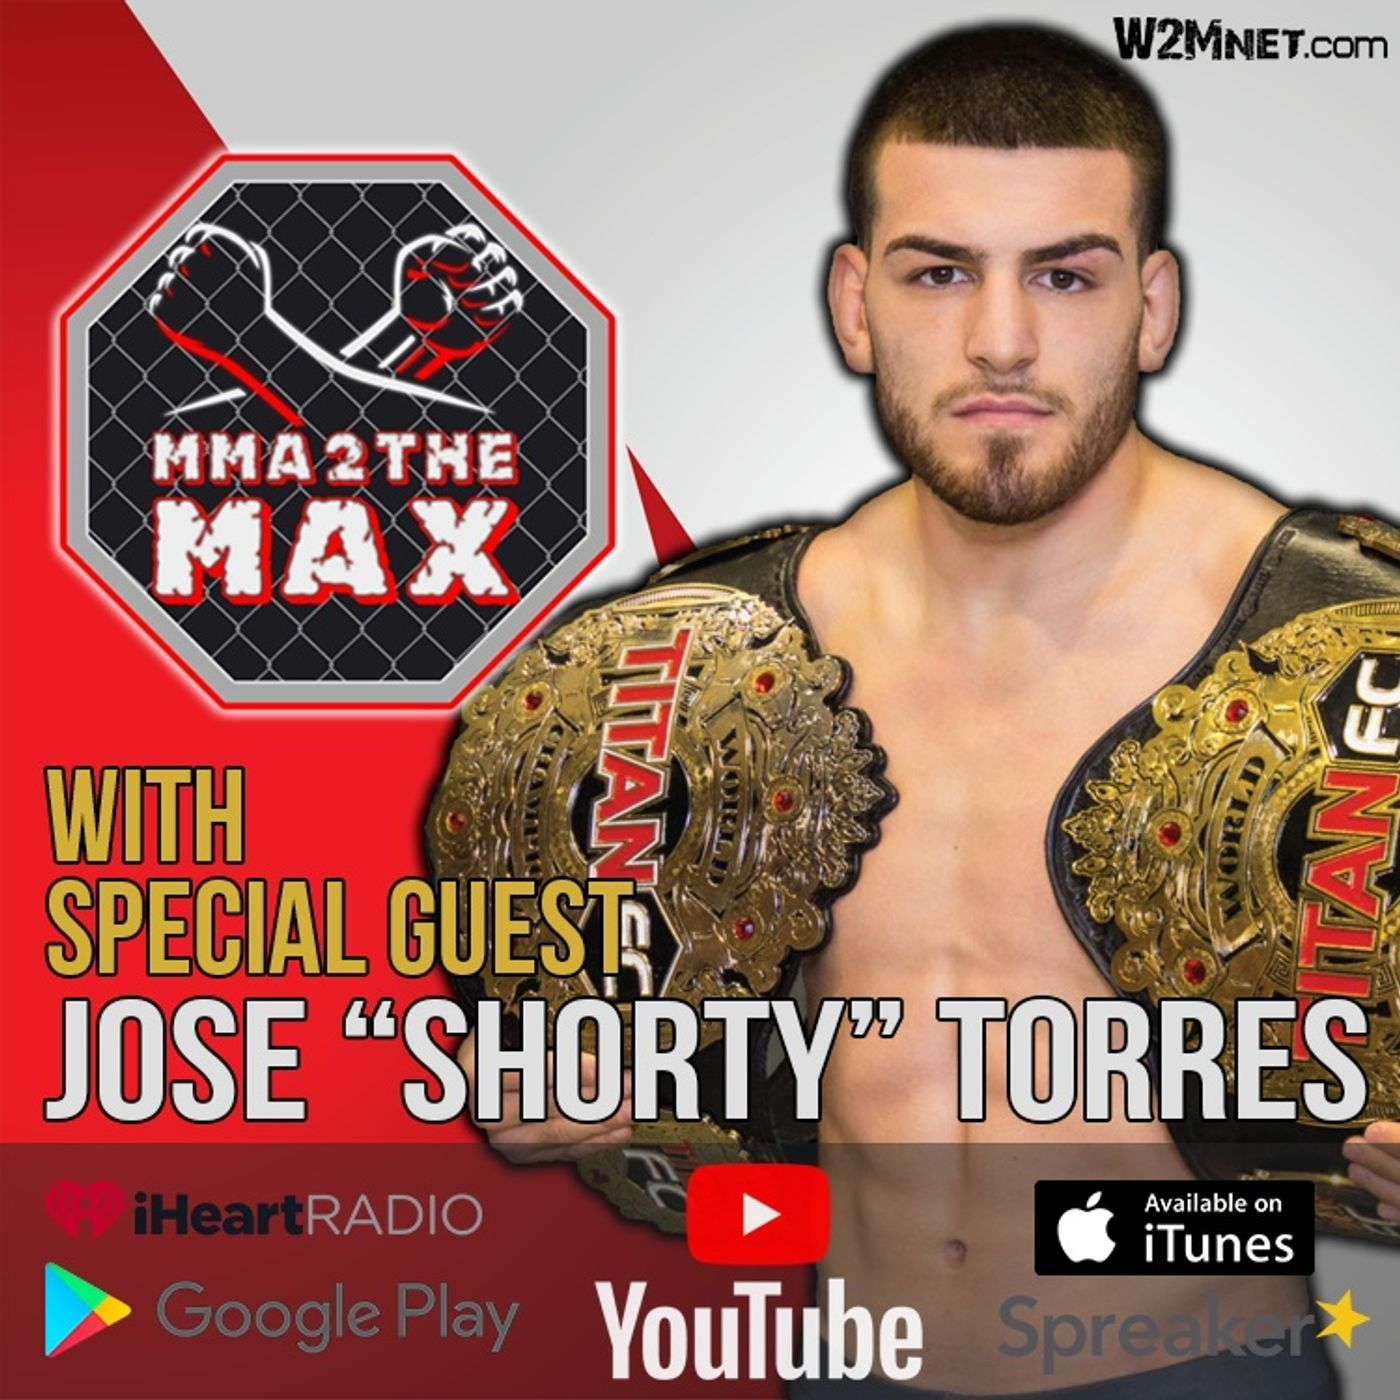 """MMA 2 the MAX #35: Jose """"Shorty"""" Torres Makes Another Appearance!"""